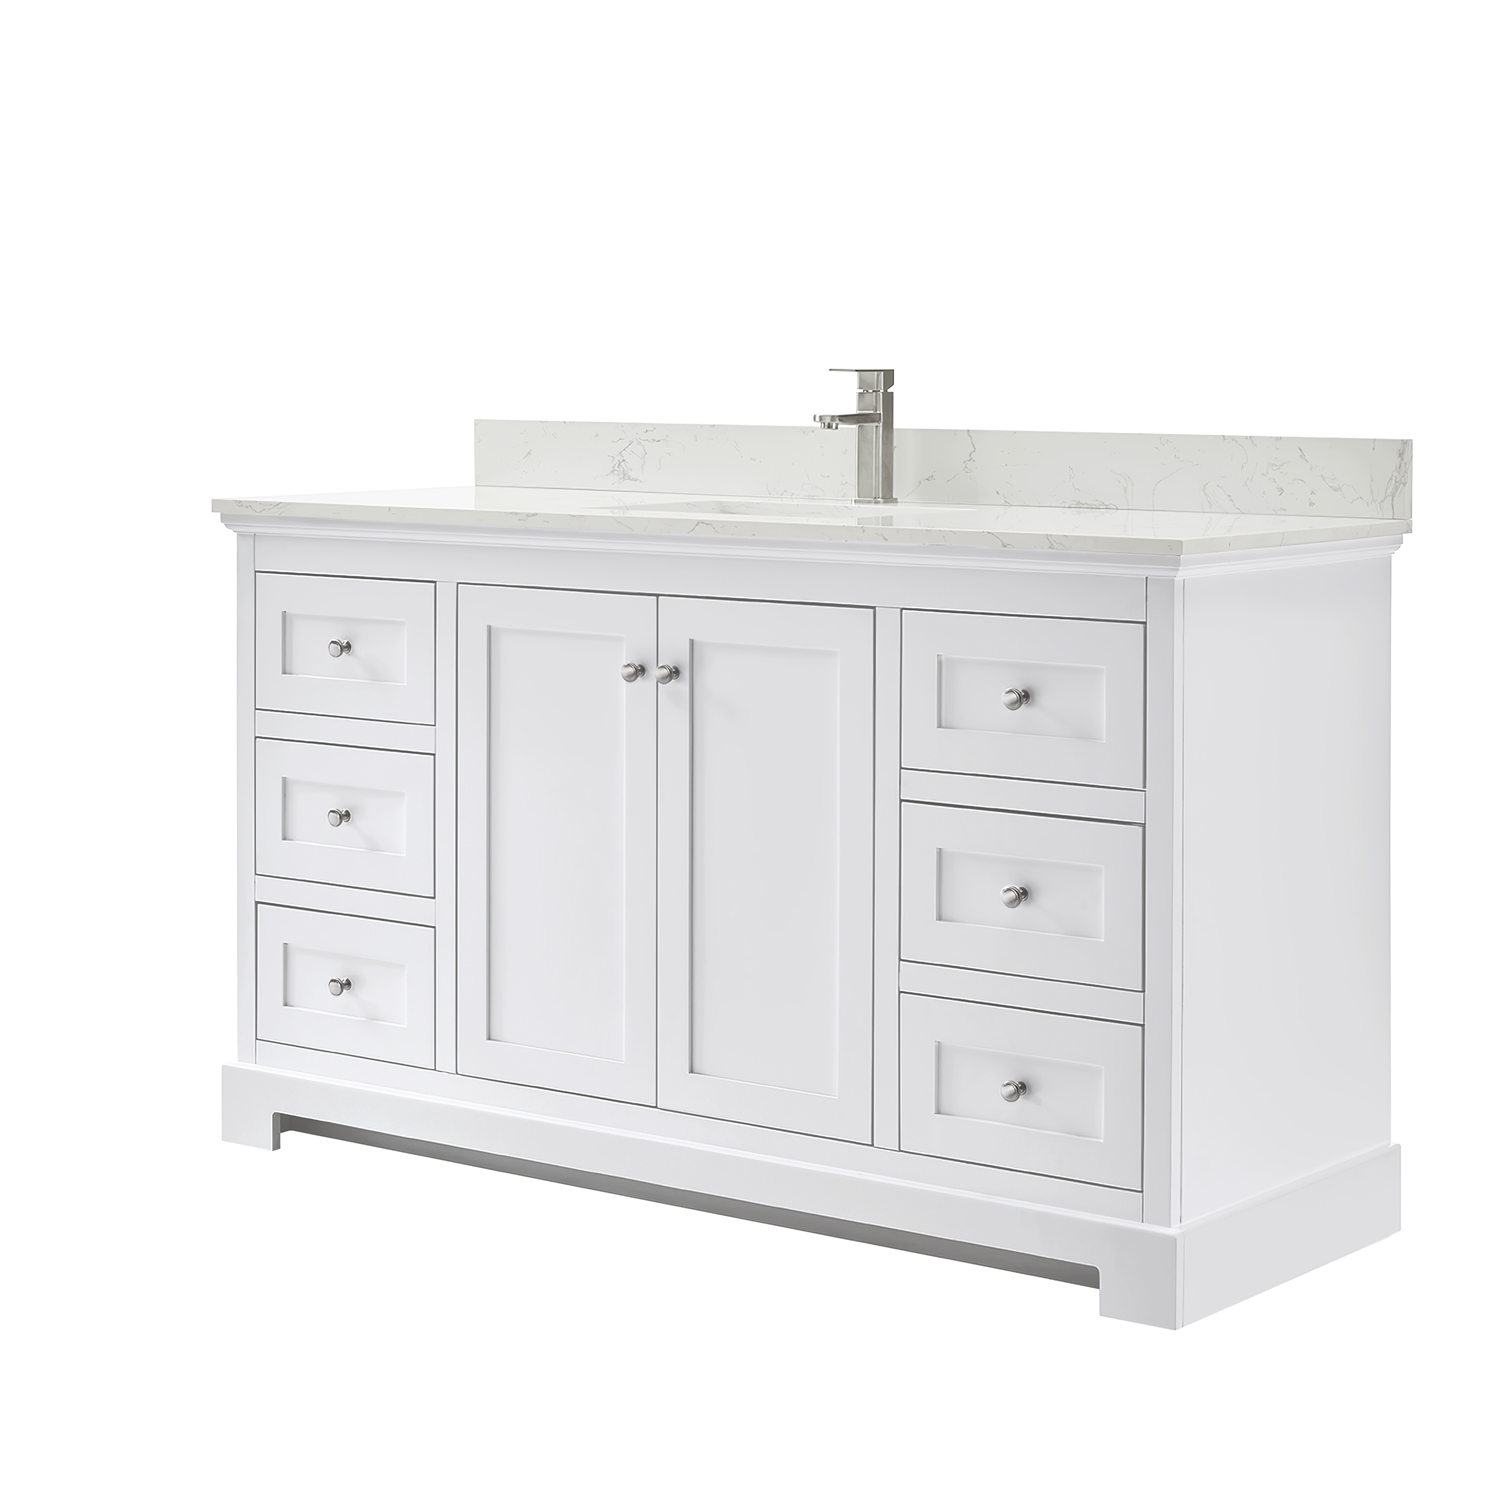 Ryla 60 Single Bathroom Vanity White Beautiful Bathroom Furniture For Every Home Wyndham Collection